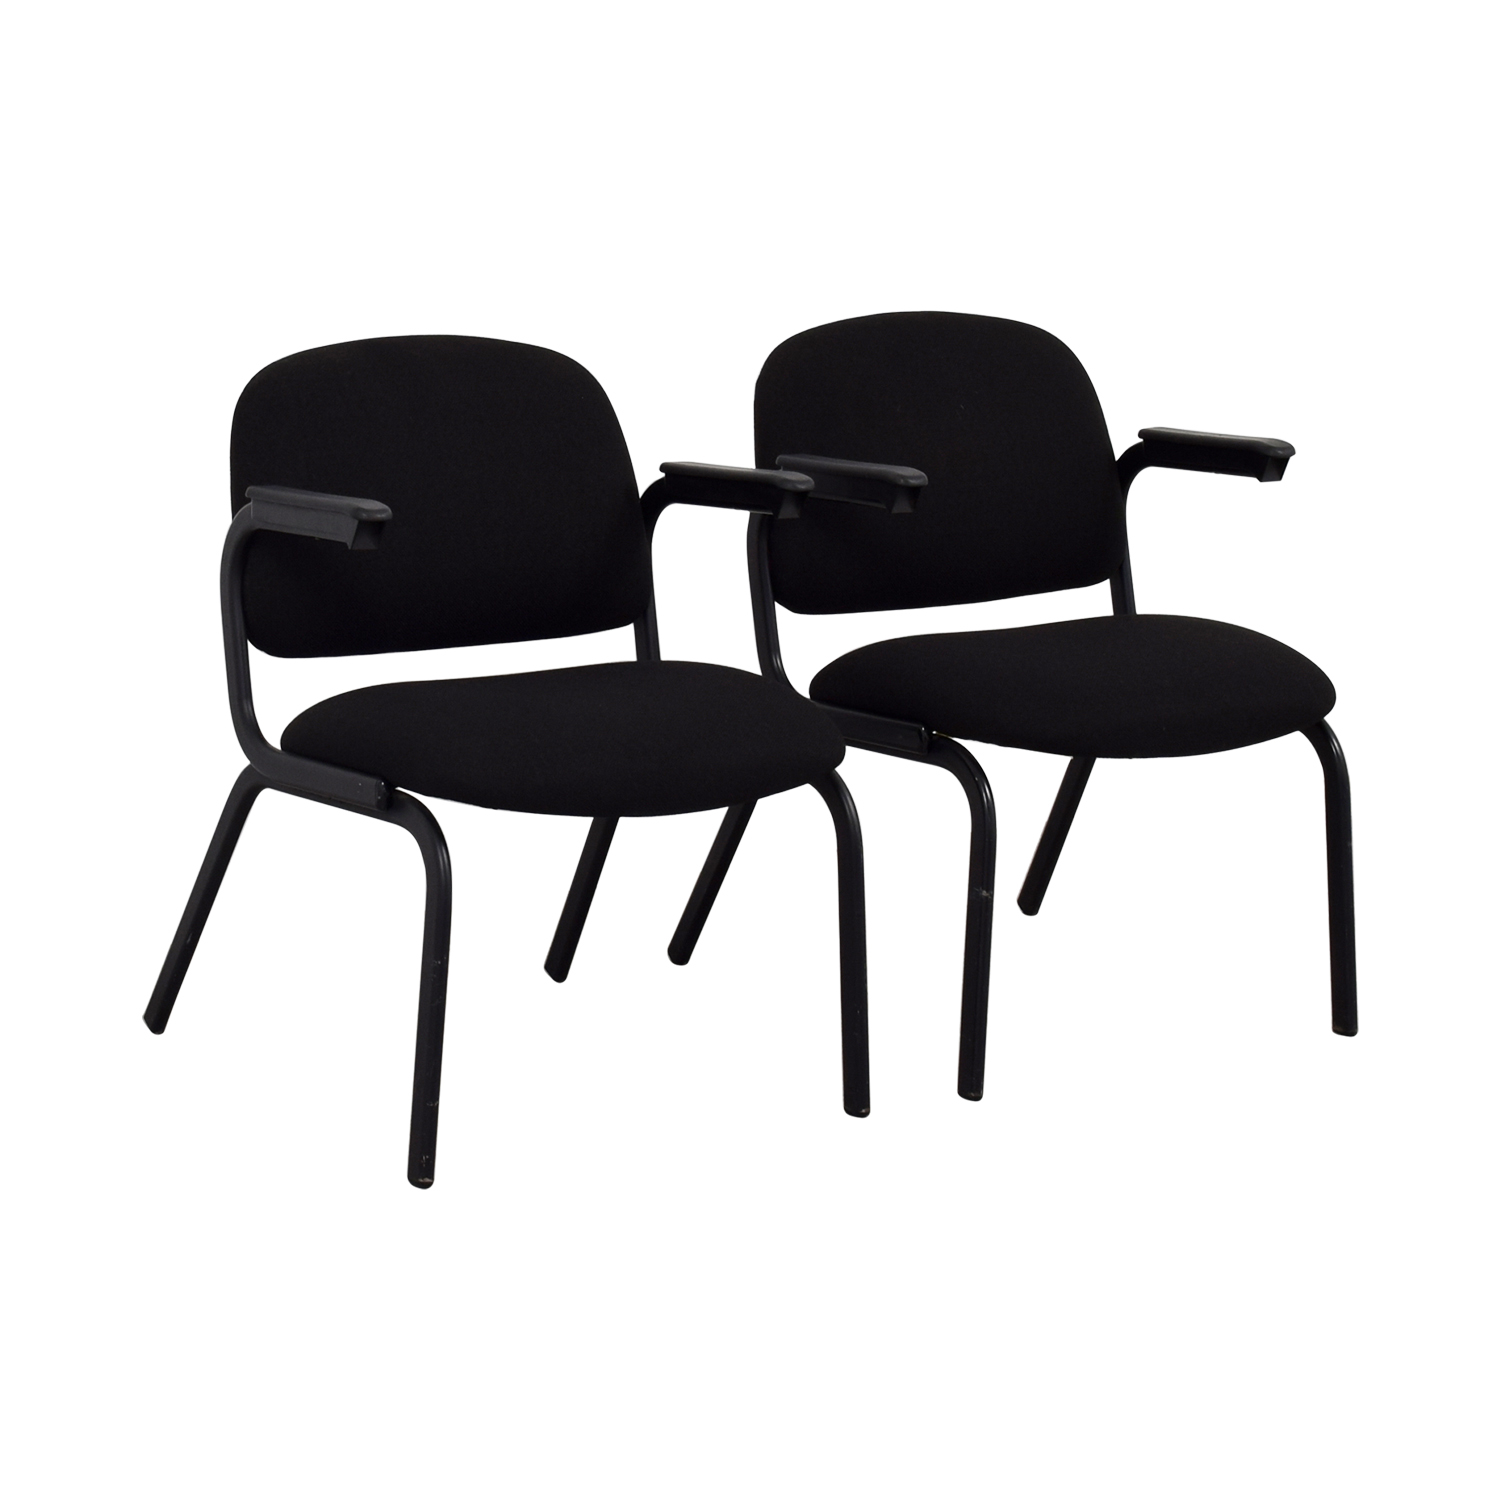 United United Black Fabric Chairs second hand